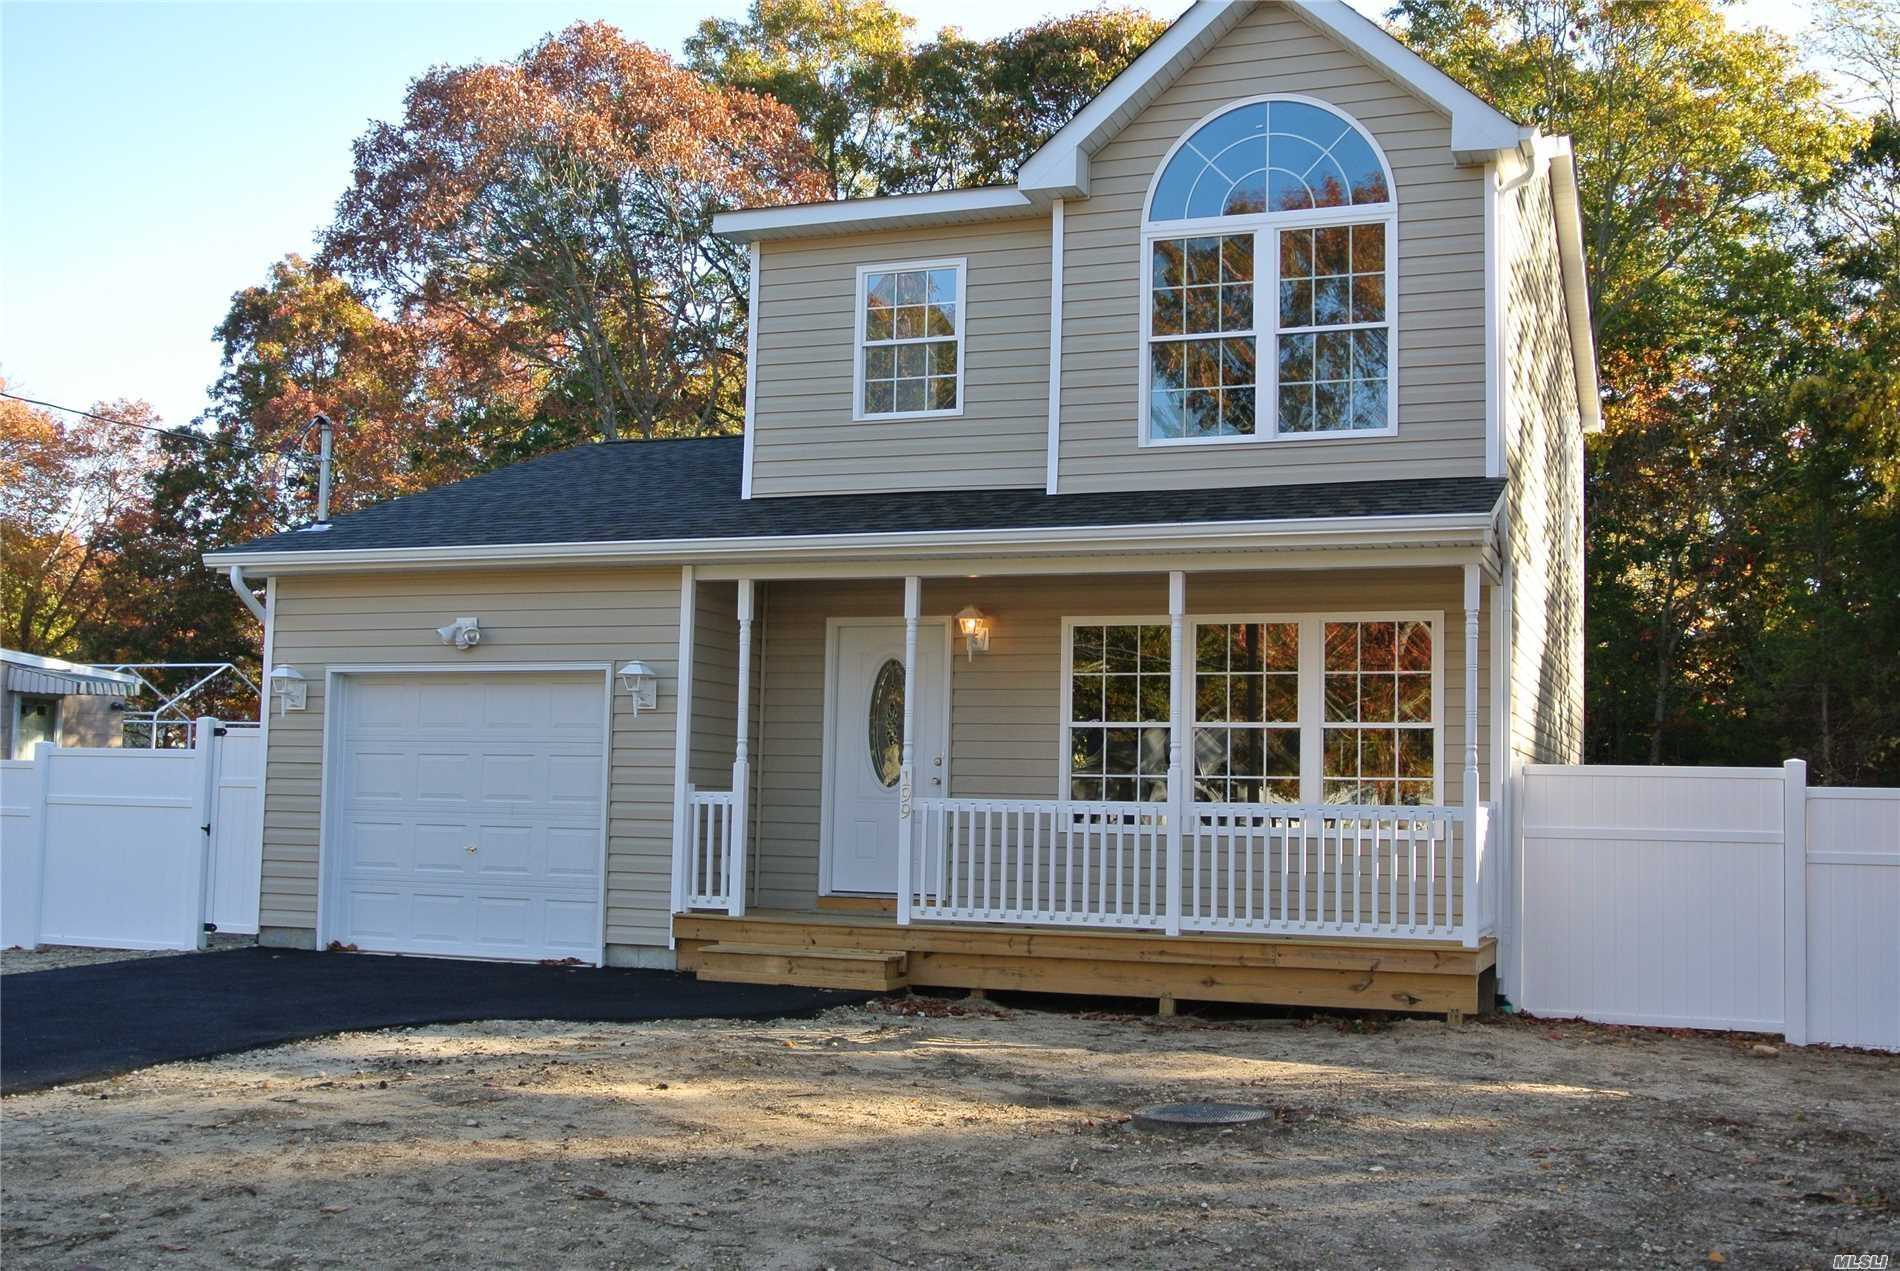 Home Is Just About Completed With Beautiful Wood Floors, Custom Kitchen With Granite Counters Tops, Stainless Steel Appl, 3 Bedrooms, 1.5 Baths, Cac, Full Basement With Separate Entrance, Close To All, Beach, Shopping & Transportation..Certified Energy Star Home . Taxes Have To Be Determined By The Town Of Brookhaven